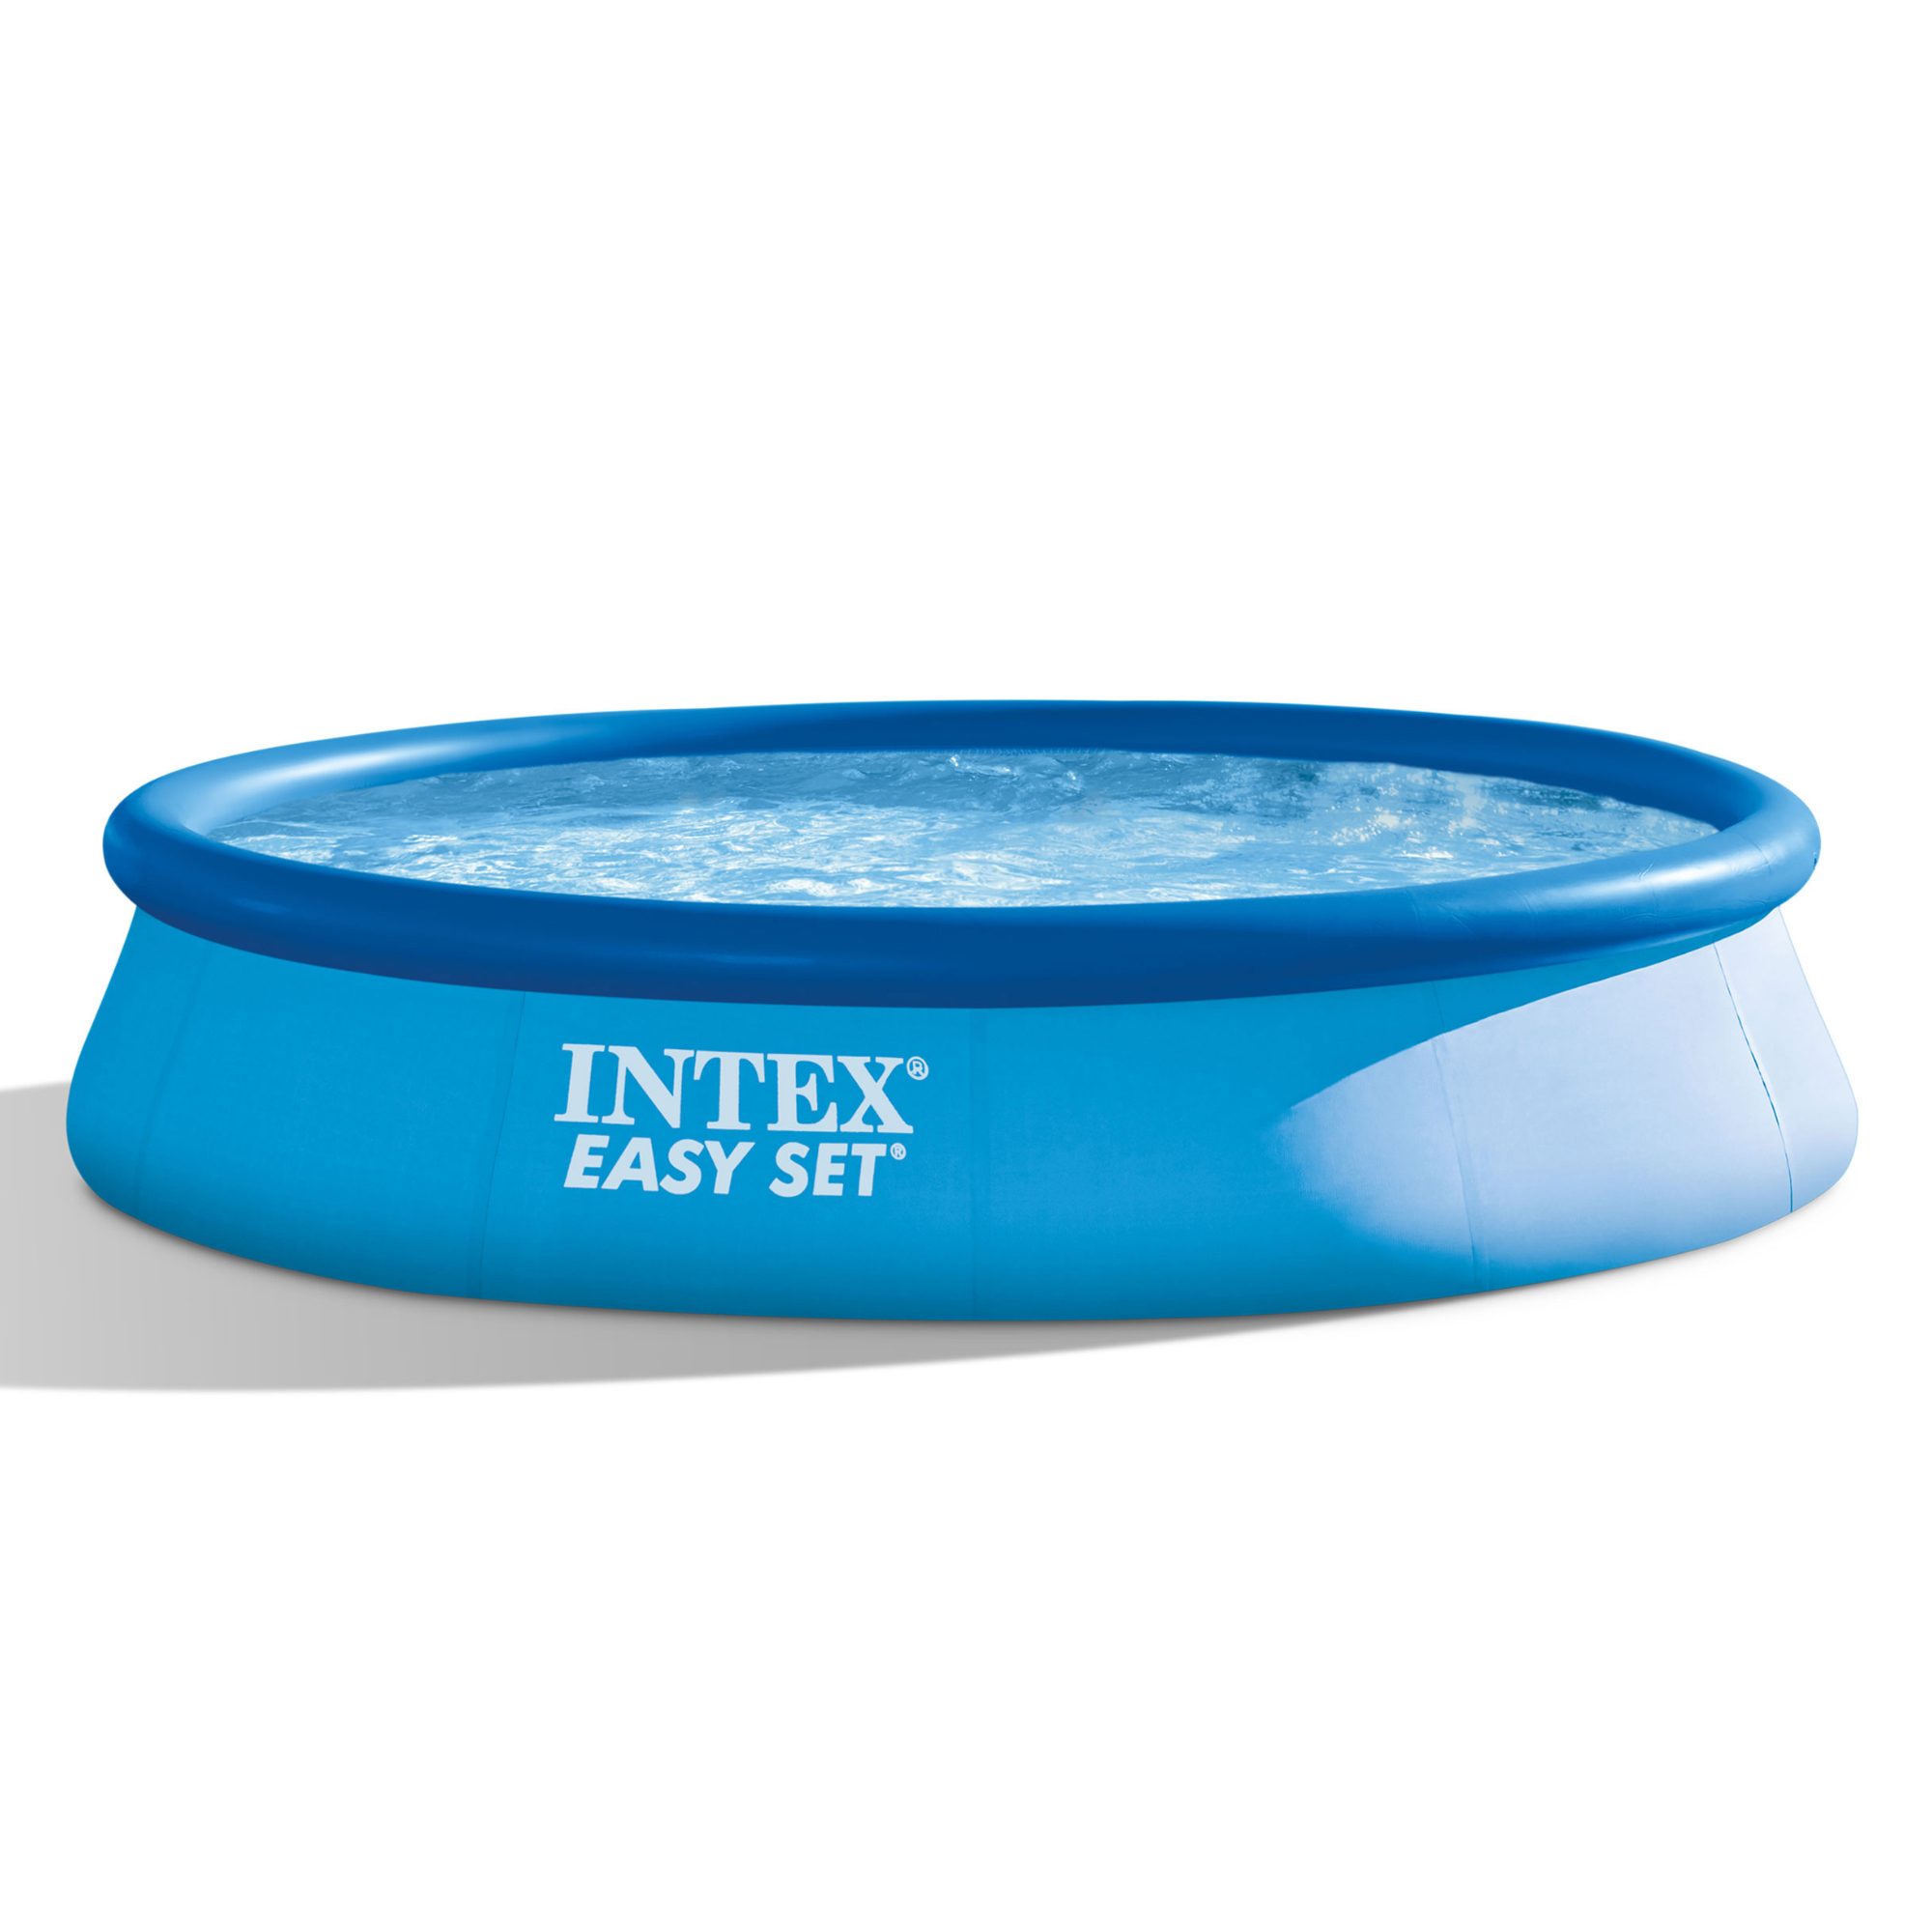 "Intex 13' x 33"" Easy Set Above Ground Pool with Filter Pump"